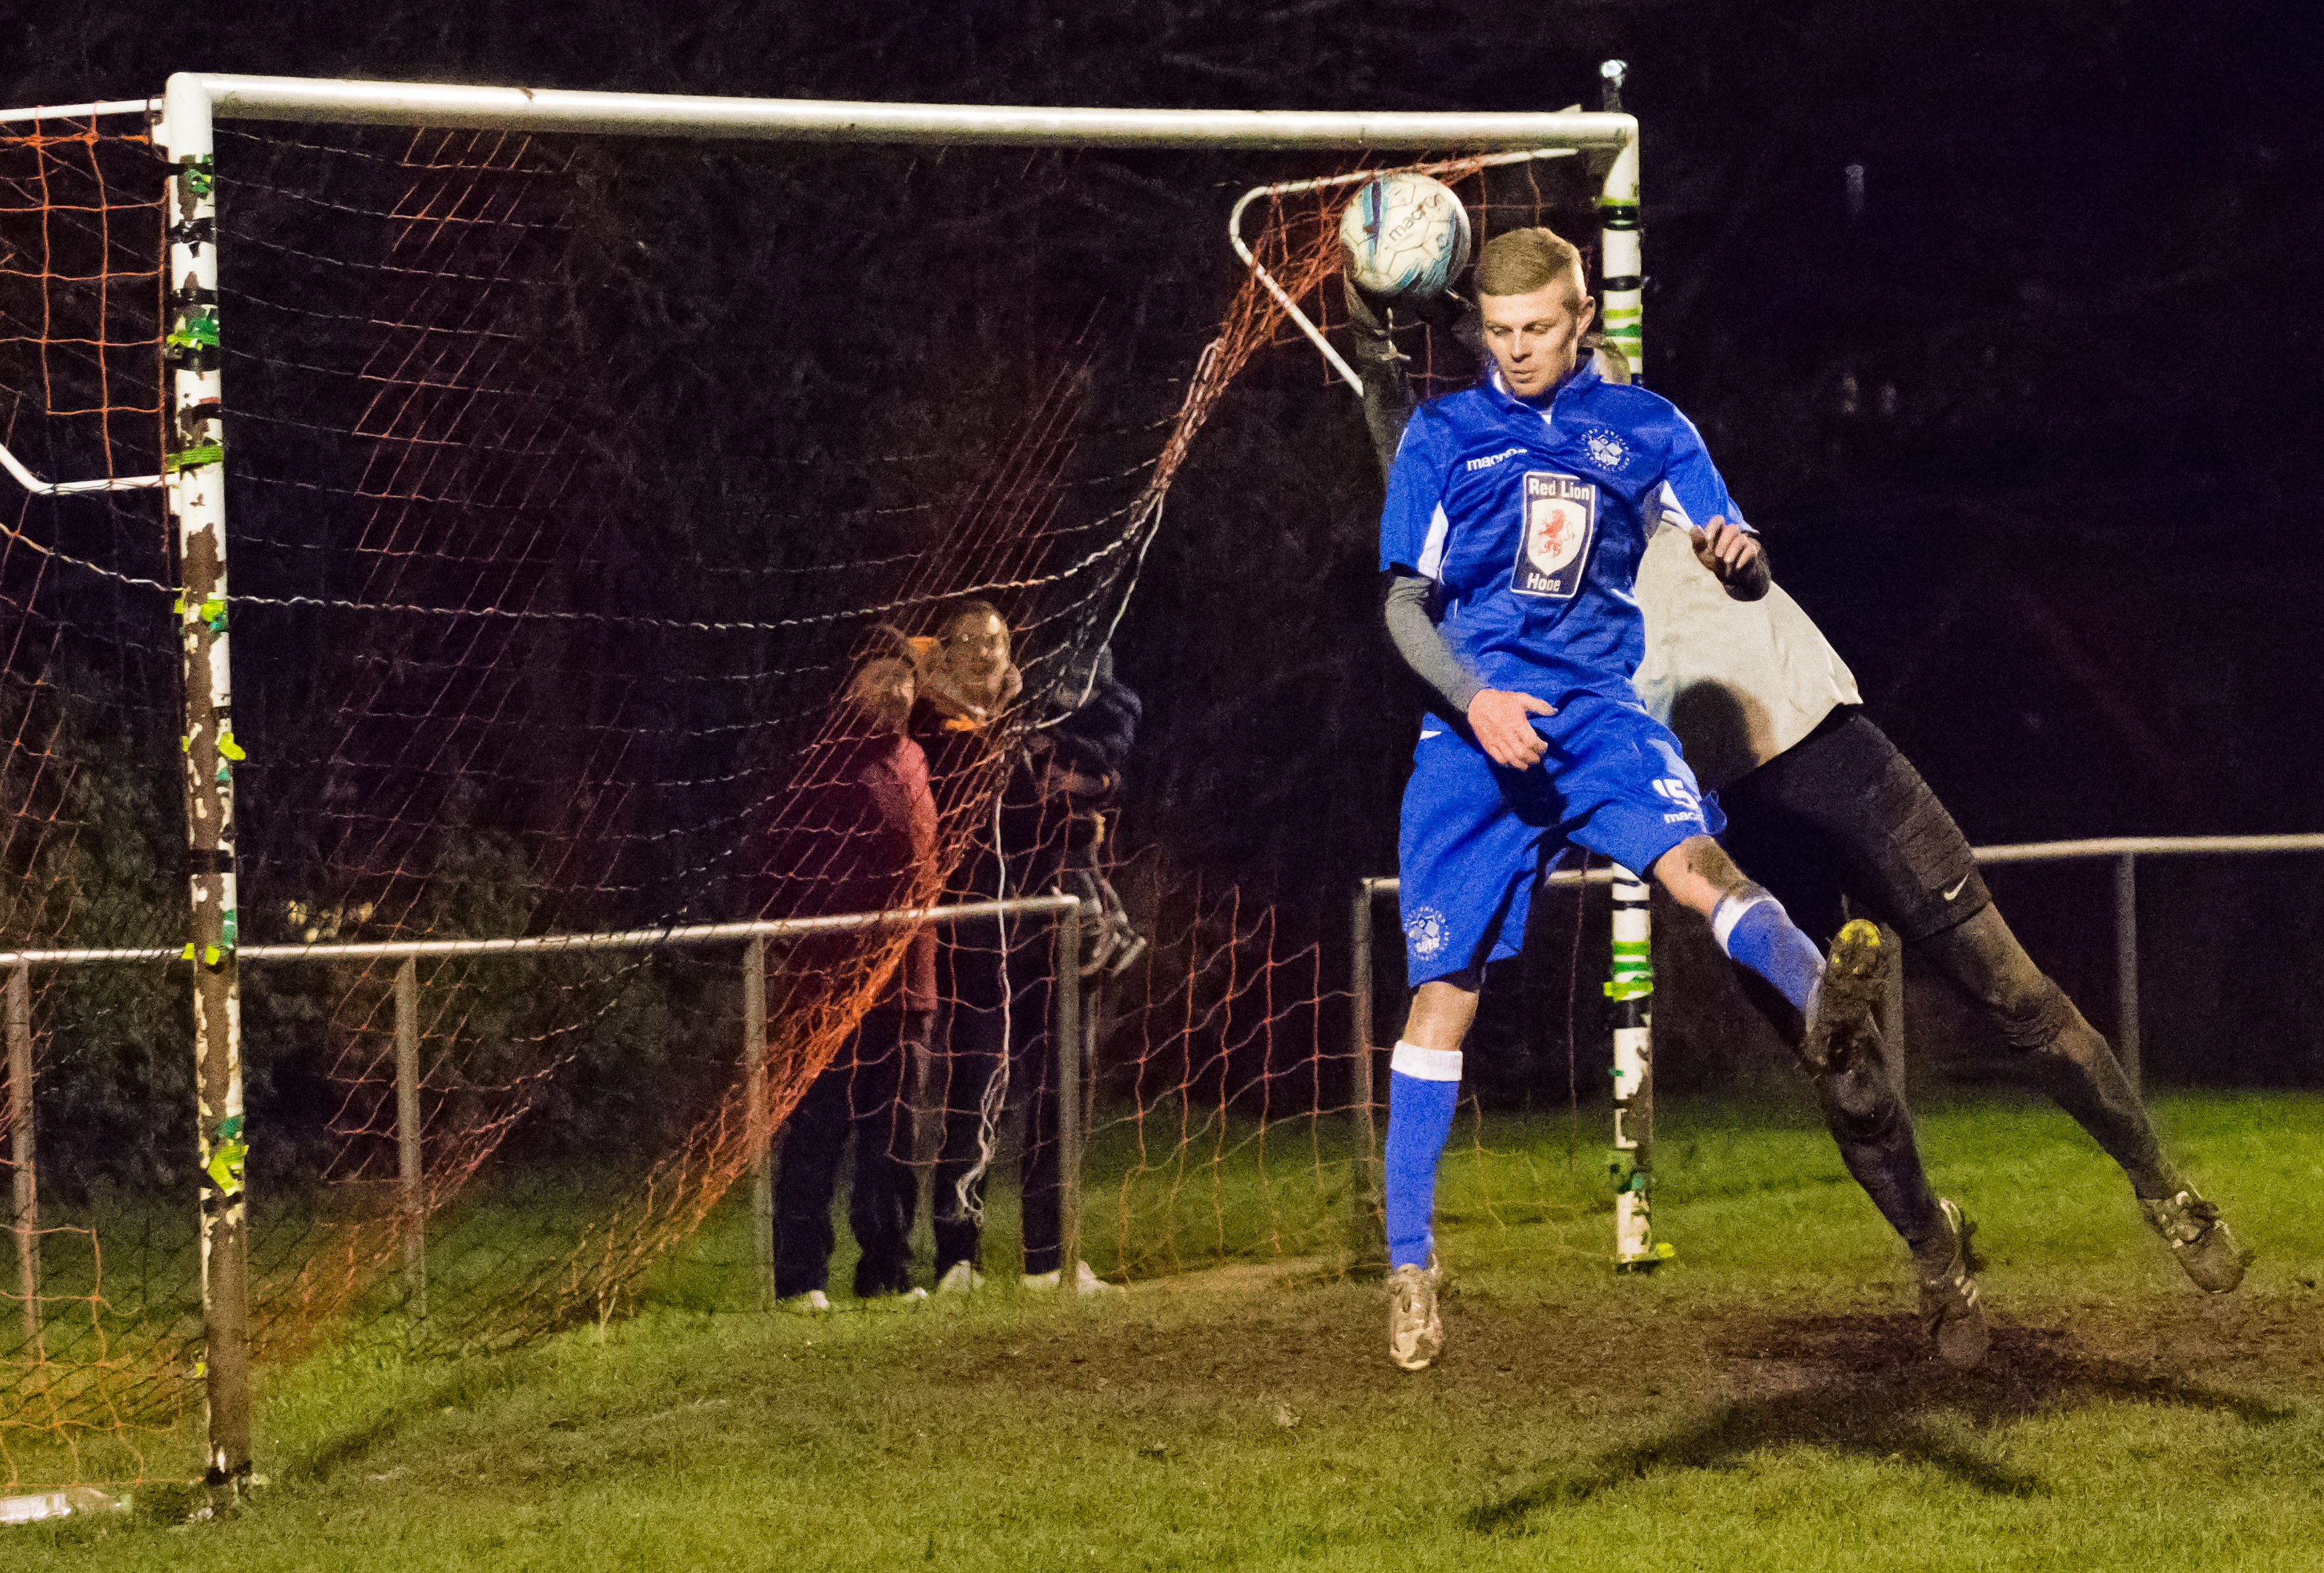 Mile Oak Res vs Sidley United 09.12.17 62